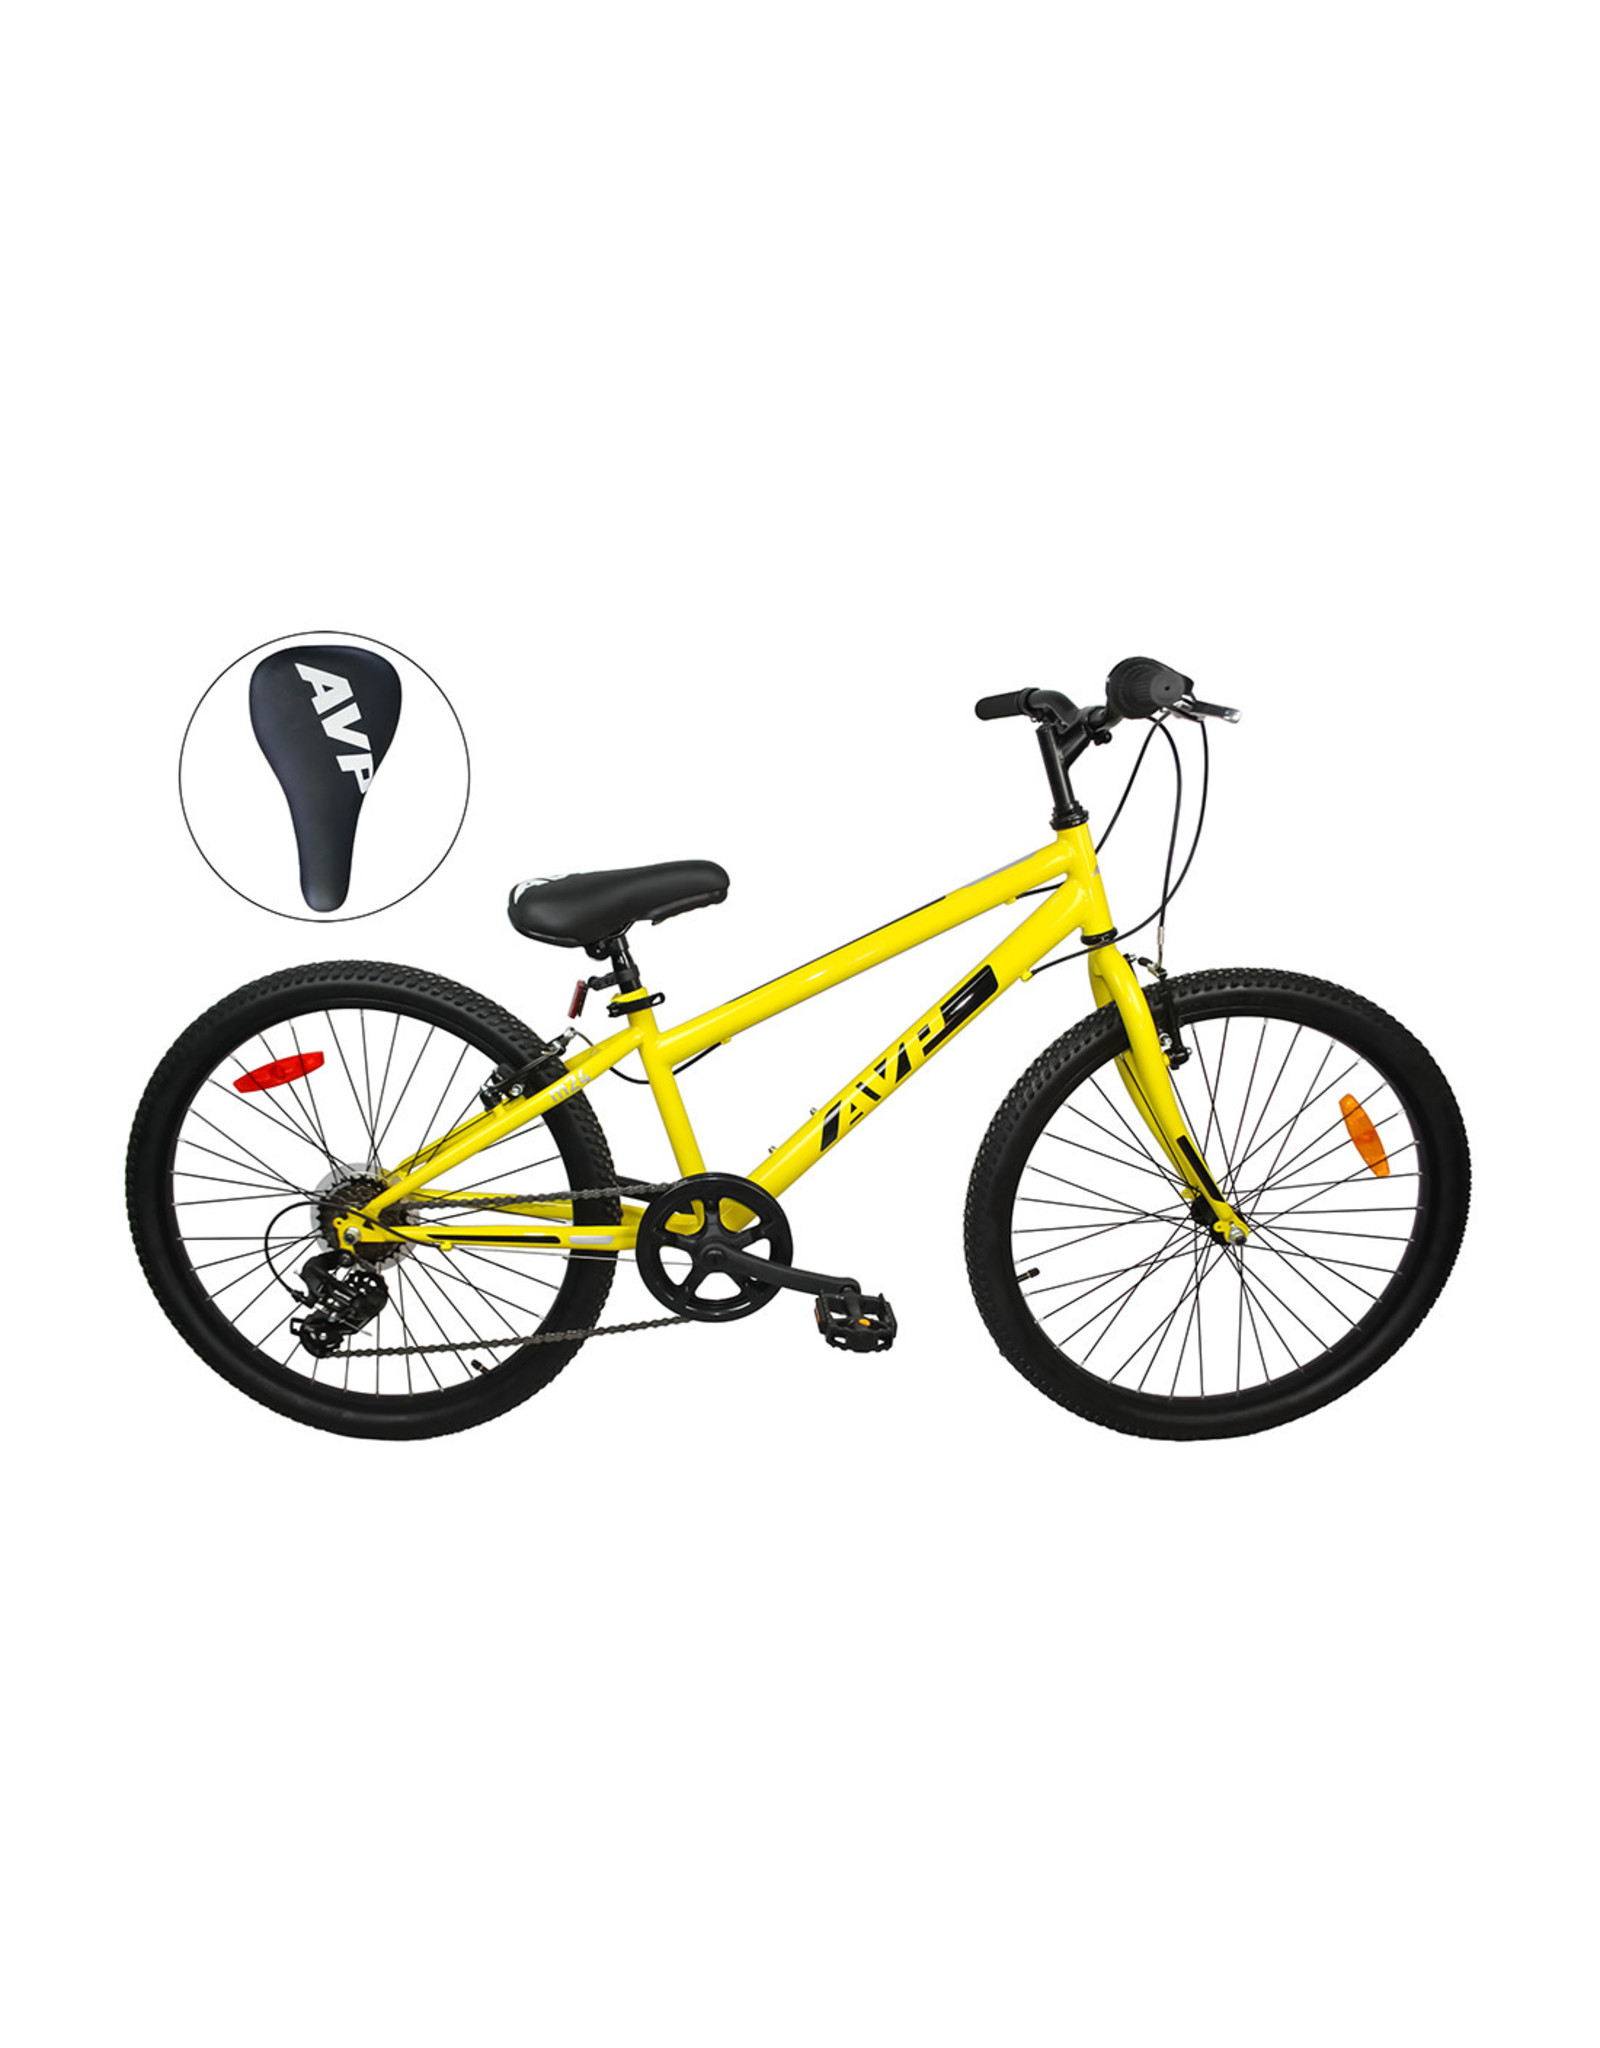 AVP AVP M24 YEL-BLK 24 JINIOR MOUNTAIN BIKE 21